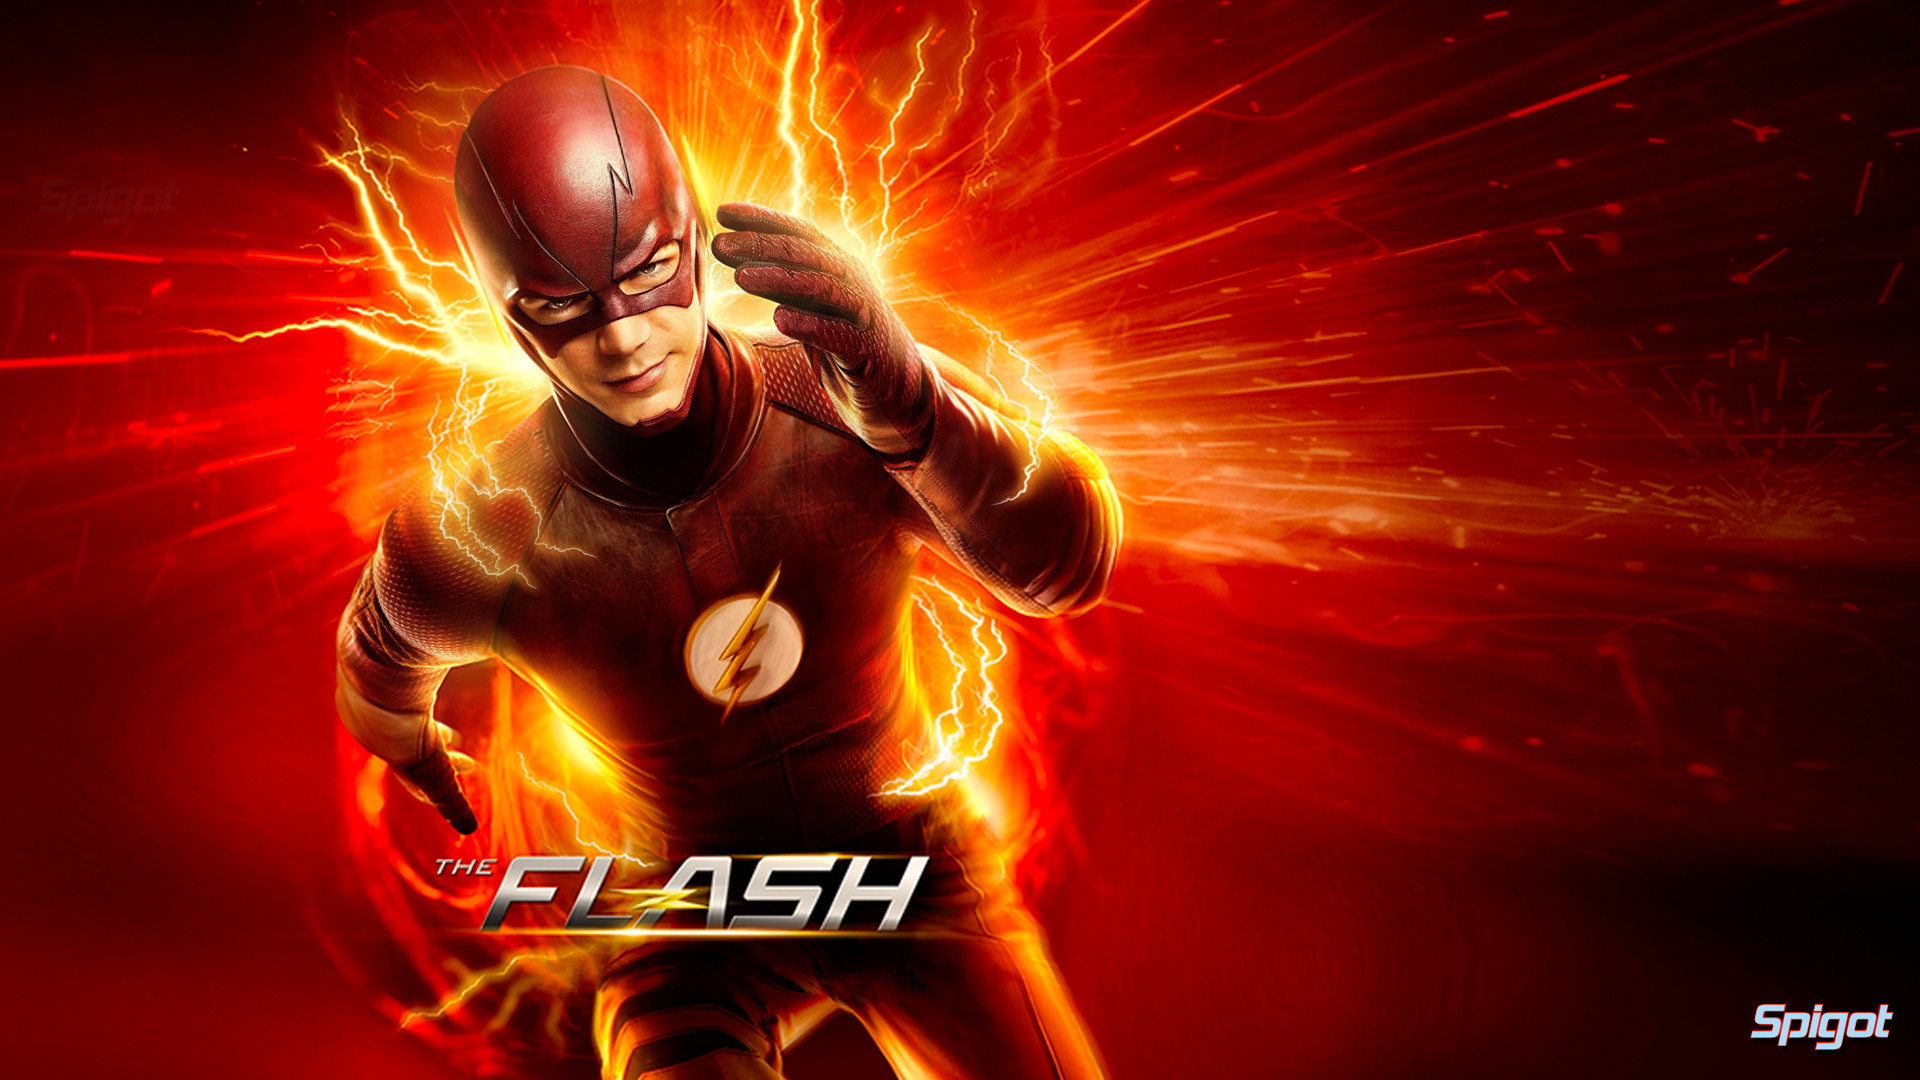 The Flash (2014) Wallpapers, Pictures, Images